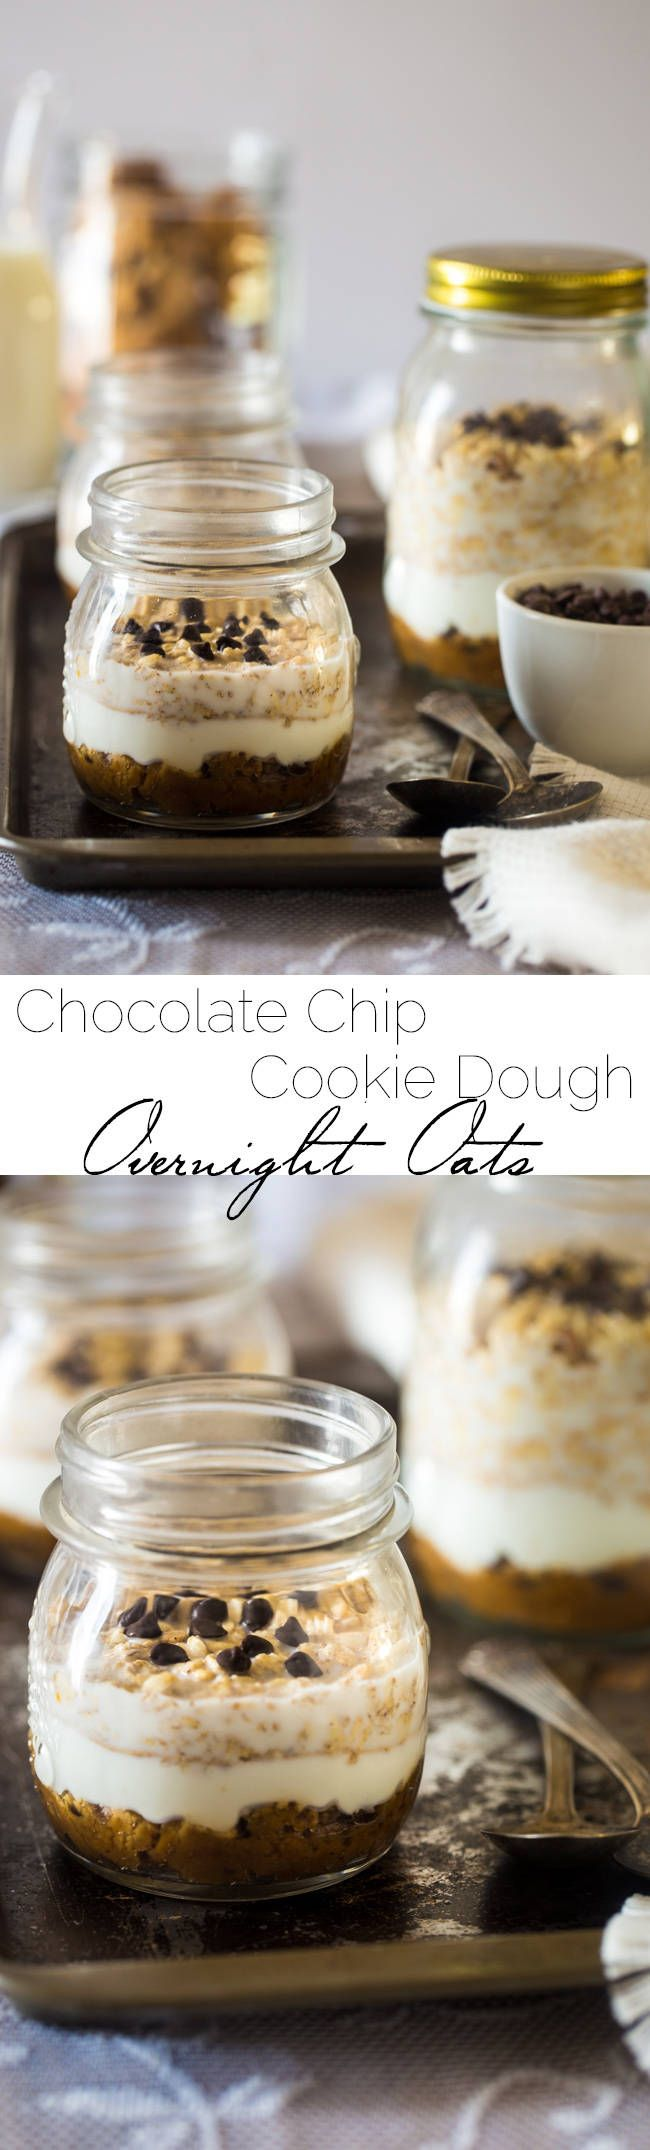 Cookie Dough Overnight Oats - These overnight oats are layered with peanut butter Greek yogurt chocolate chip cookie dough for an easy breakfast that is high protein, and perfect for busy mornings! | Foodfaithfitness.com | @FoodFaithFit